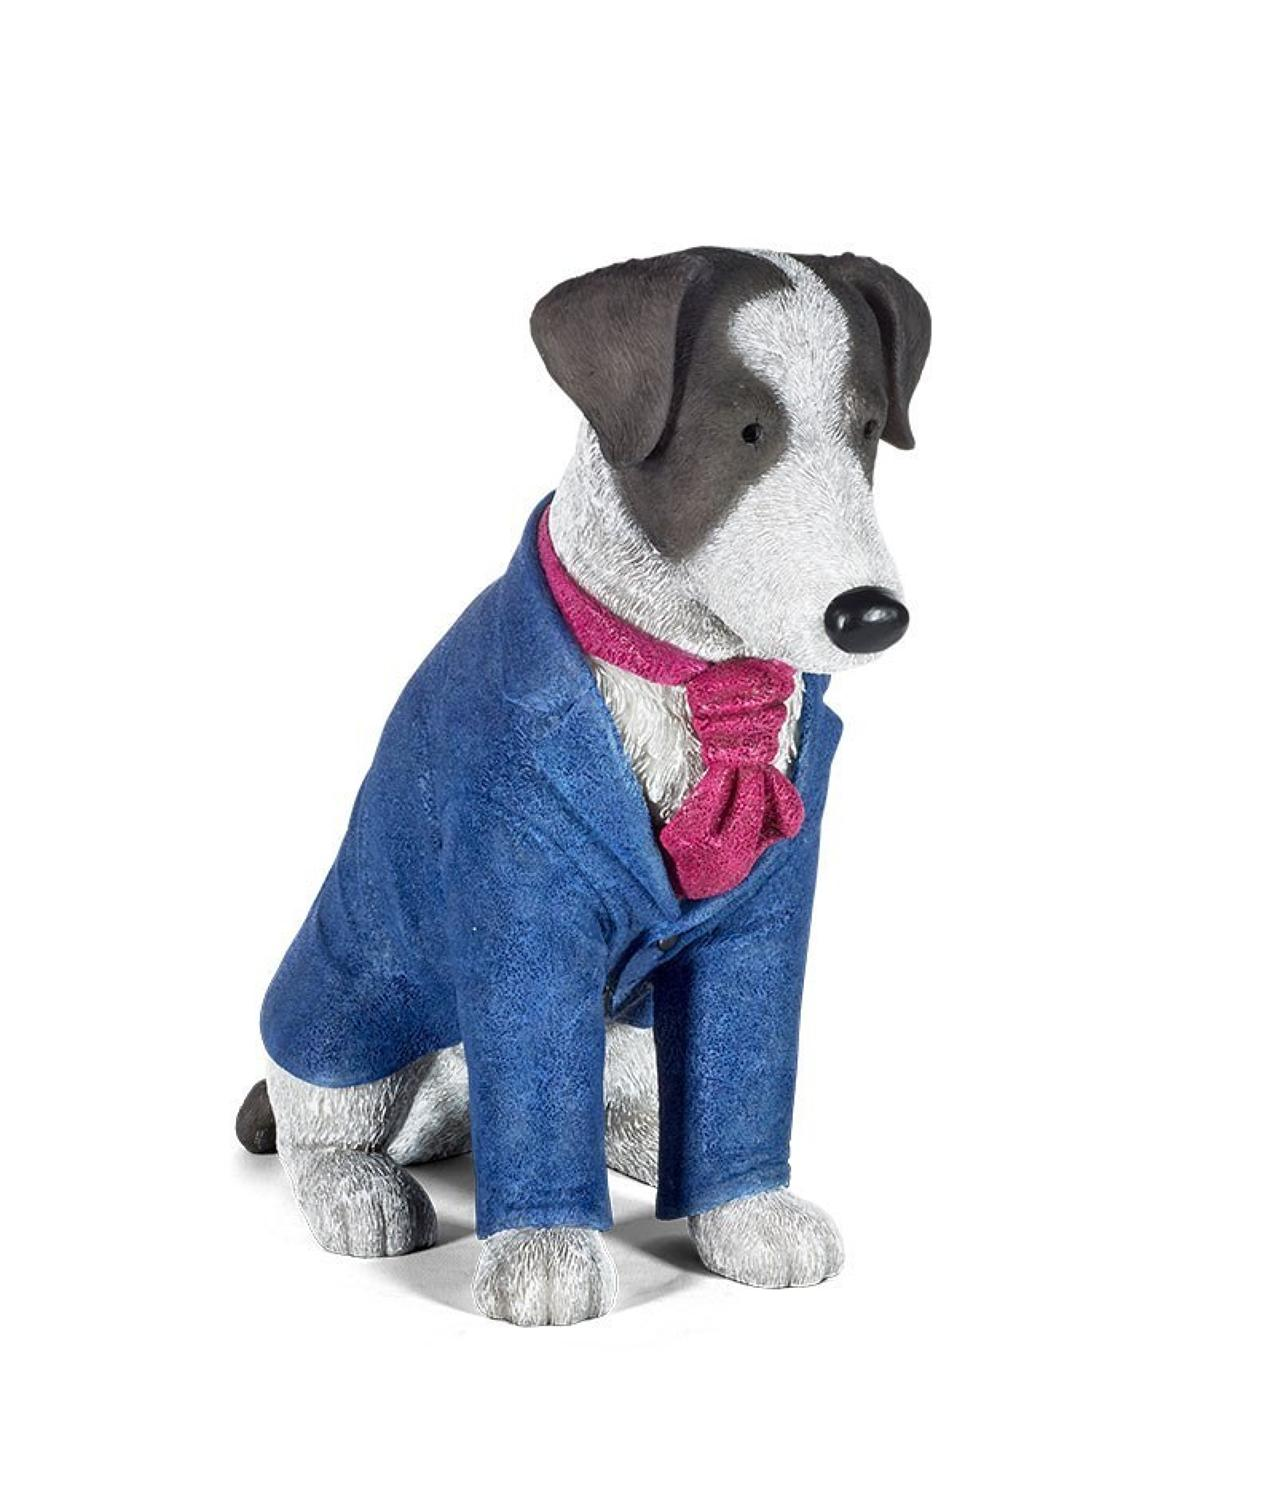 Doug Hyde - Suited and Booted Dog Sculpture